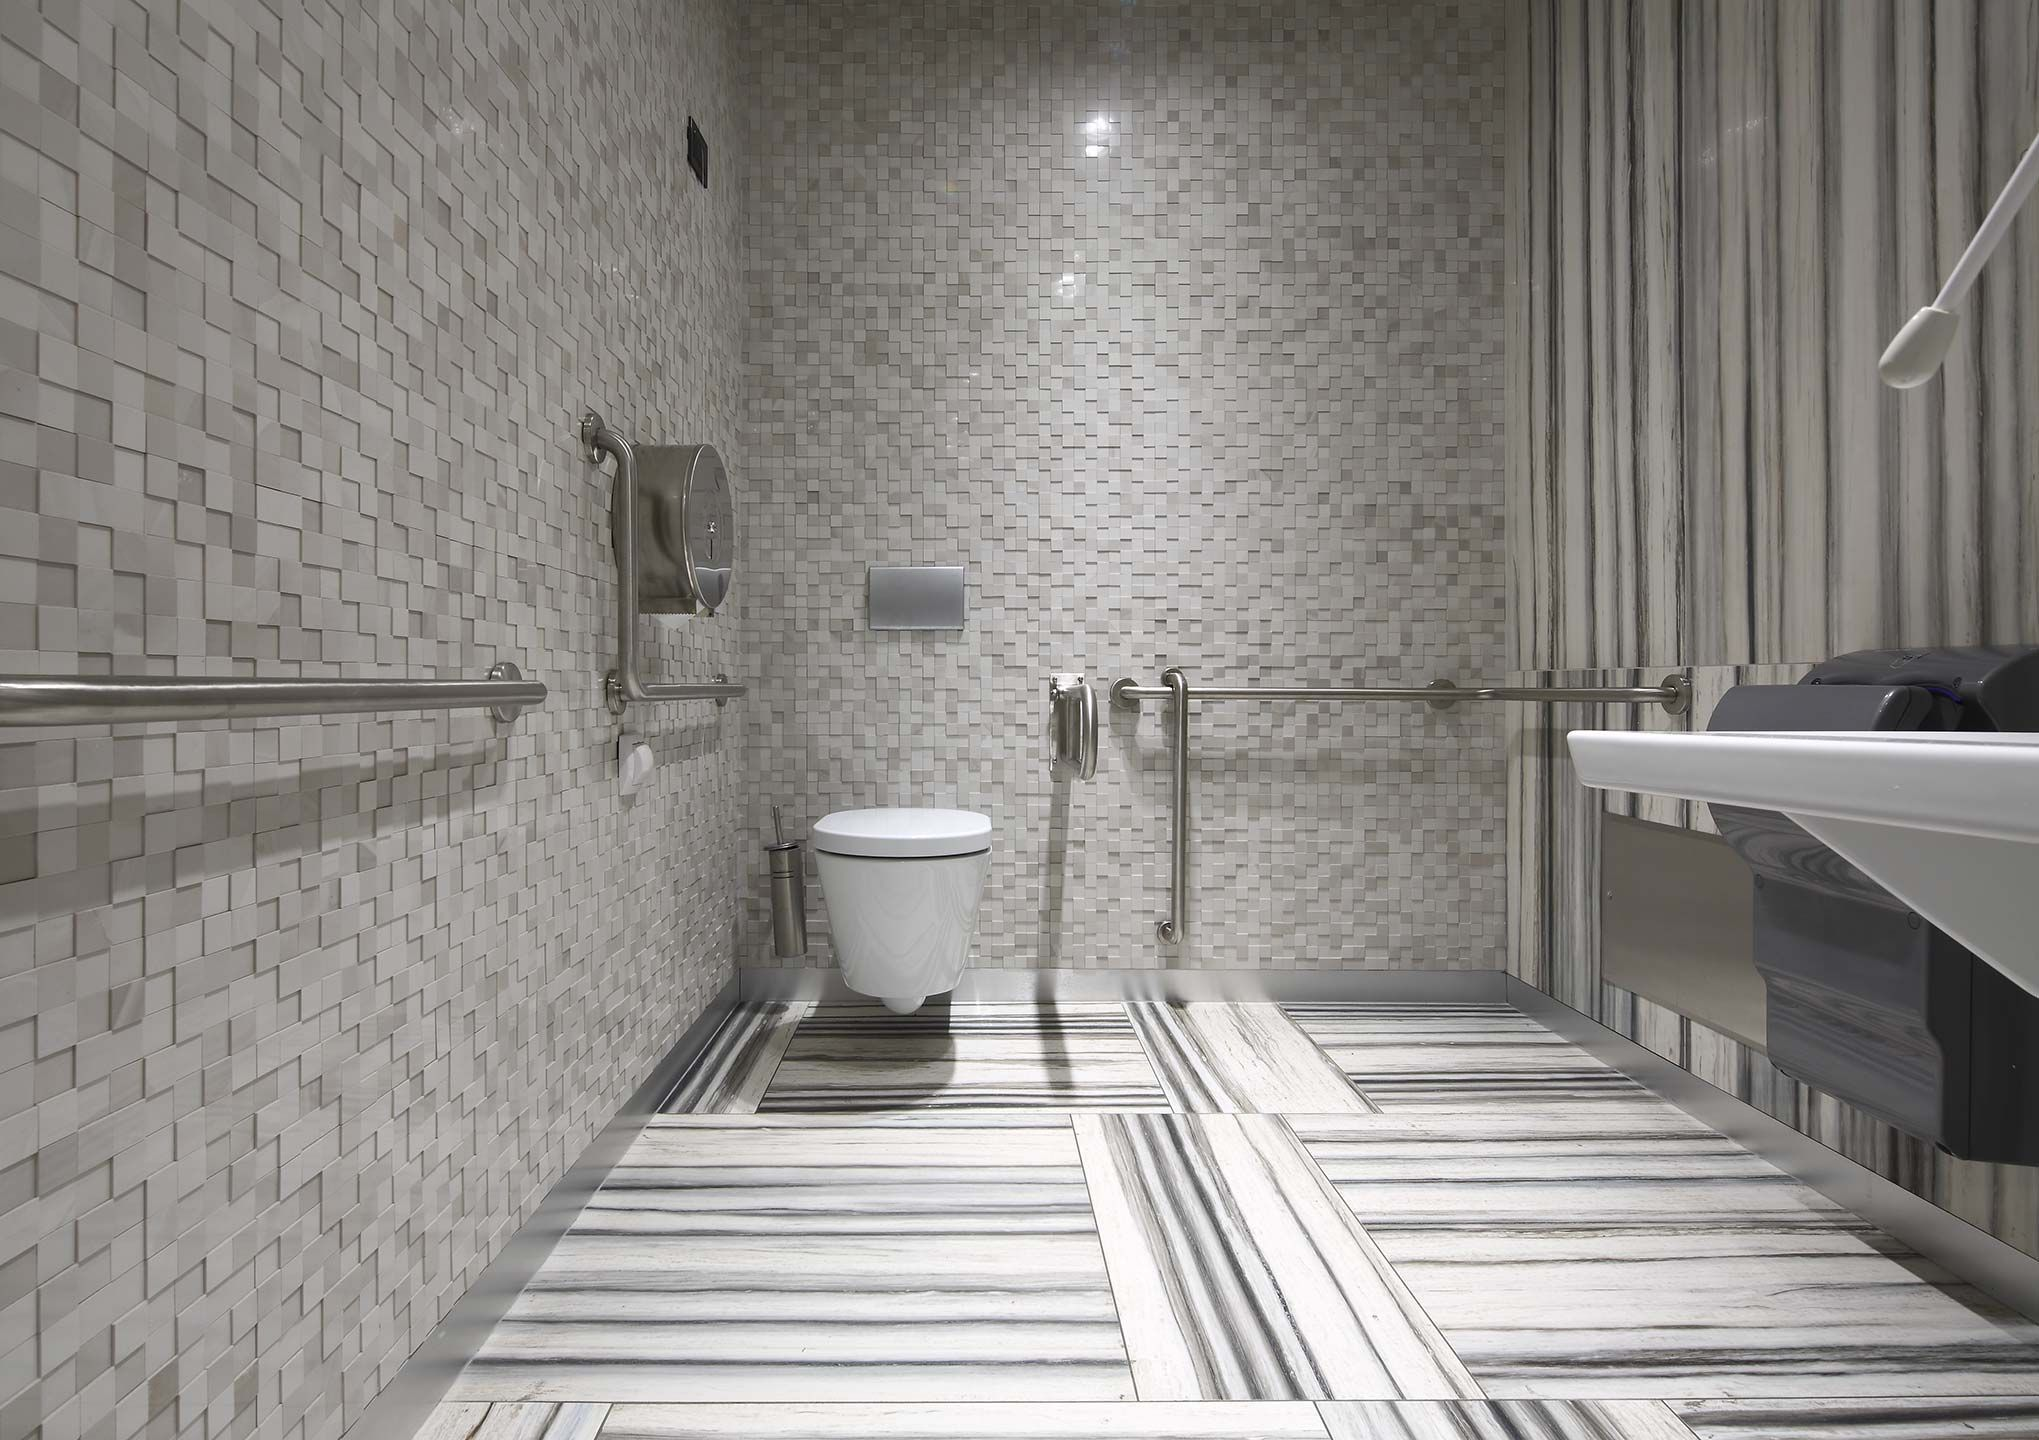 Bathroom Floor And Mosaic Decorations With Ceramic Tiles Restroom